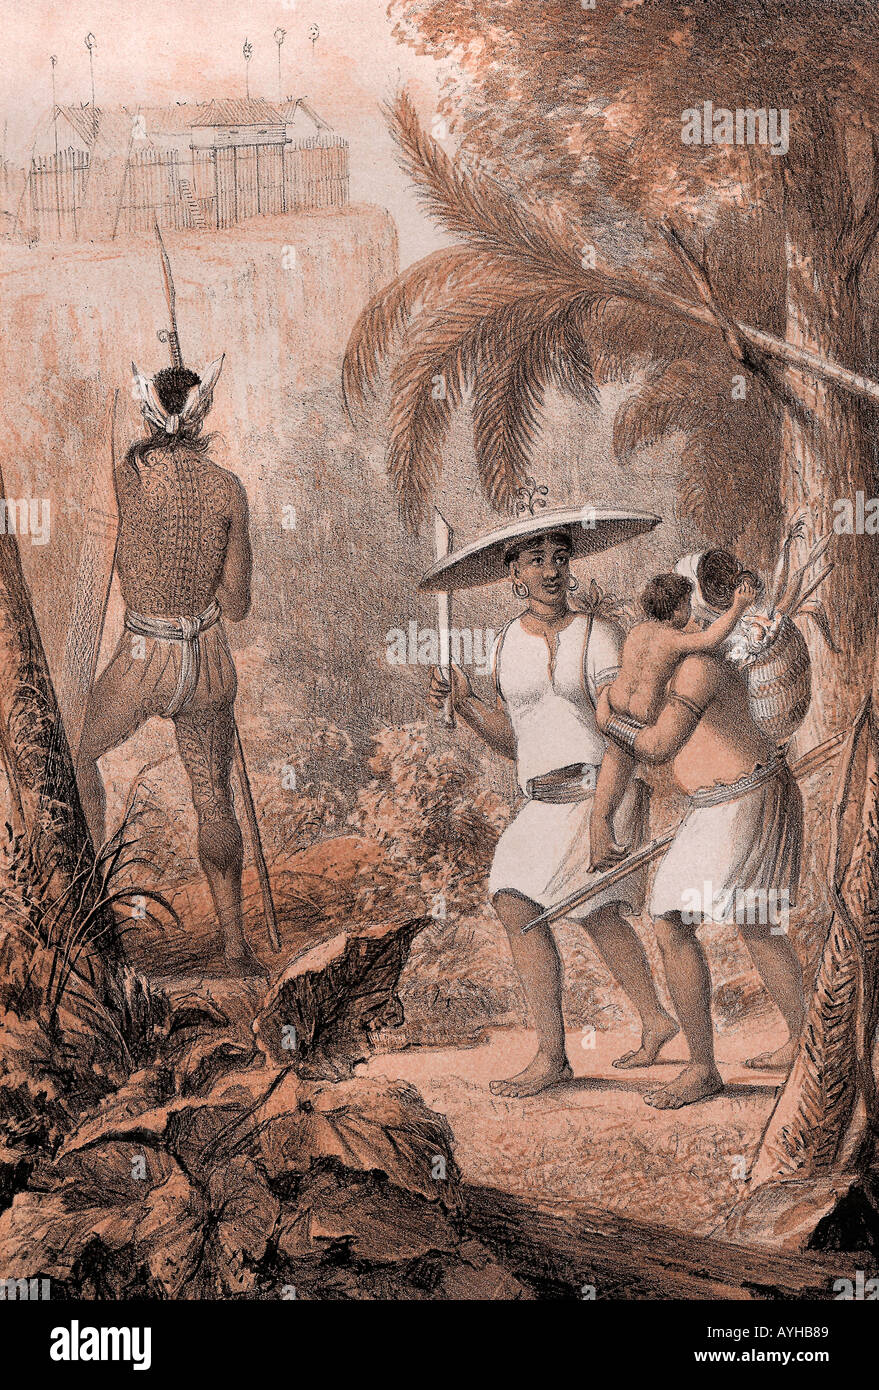 Victorian etching of a jungle scene in Borneo Kalimantan The Dayak and Iban still live in Kalimantan and neighbouring Sarawak - Stock Image